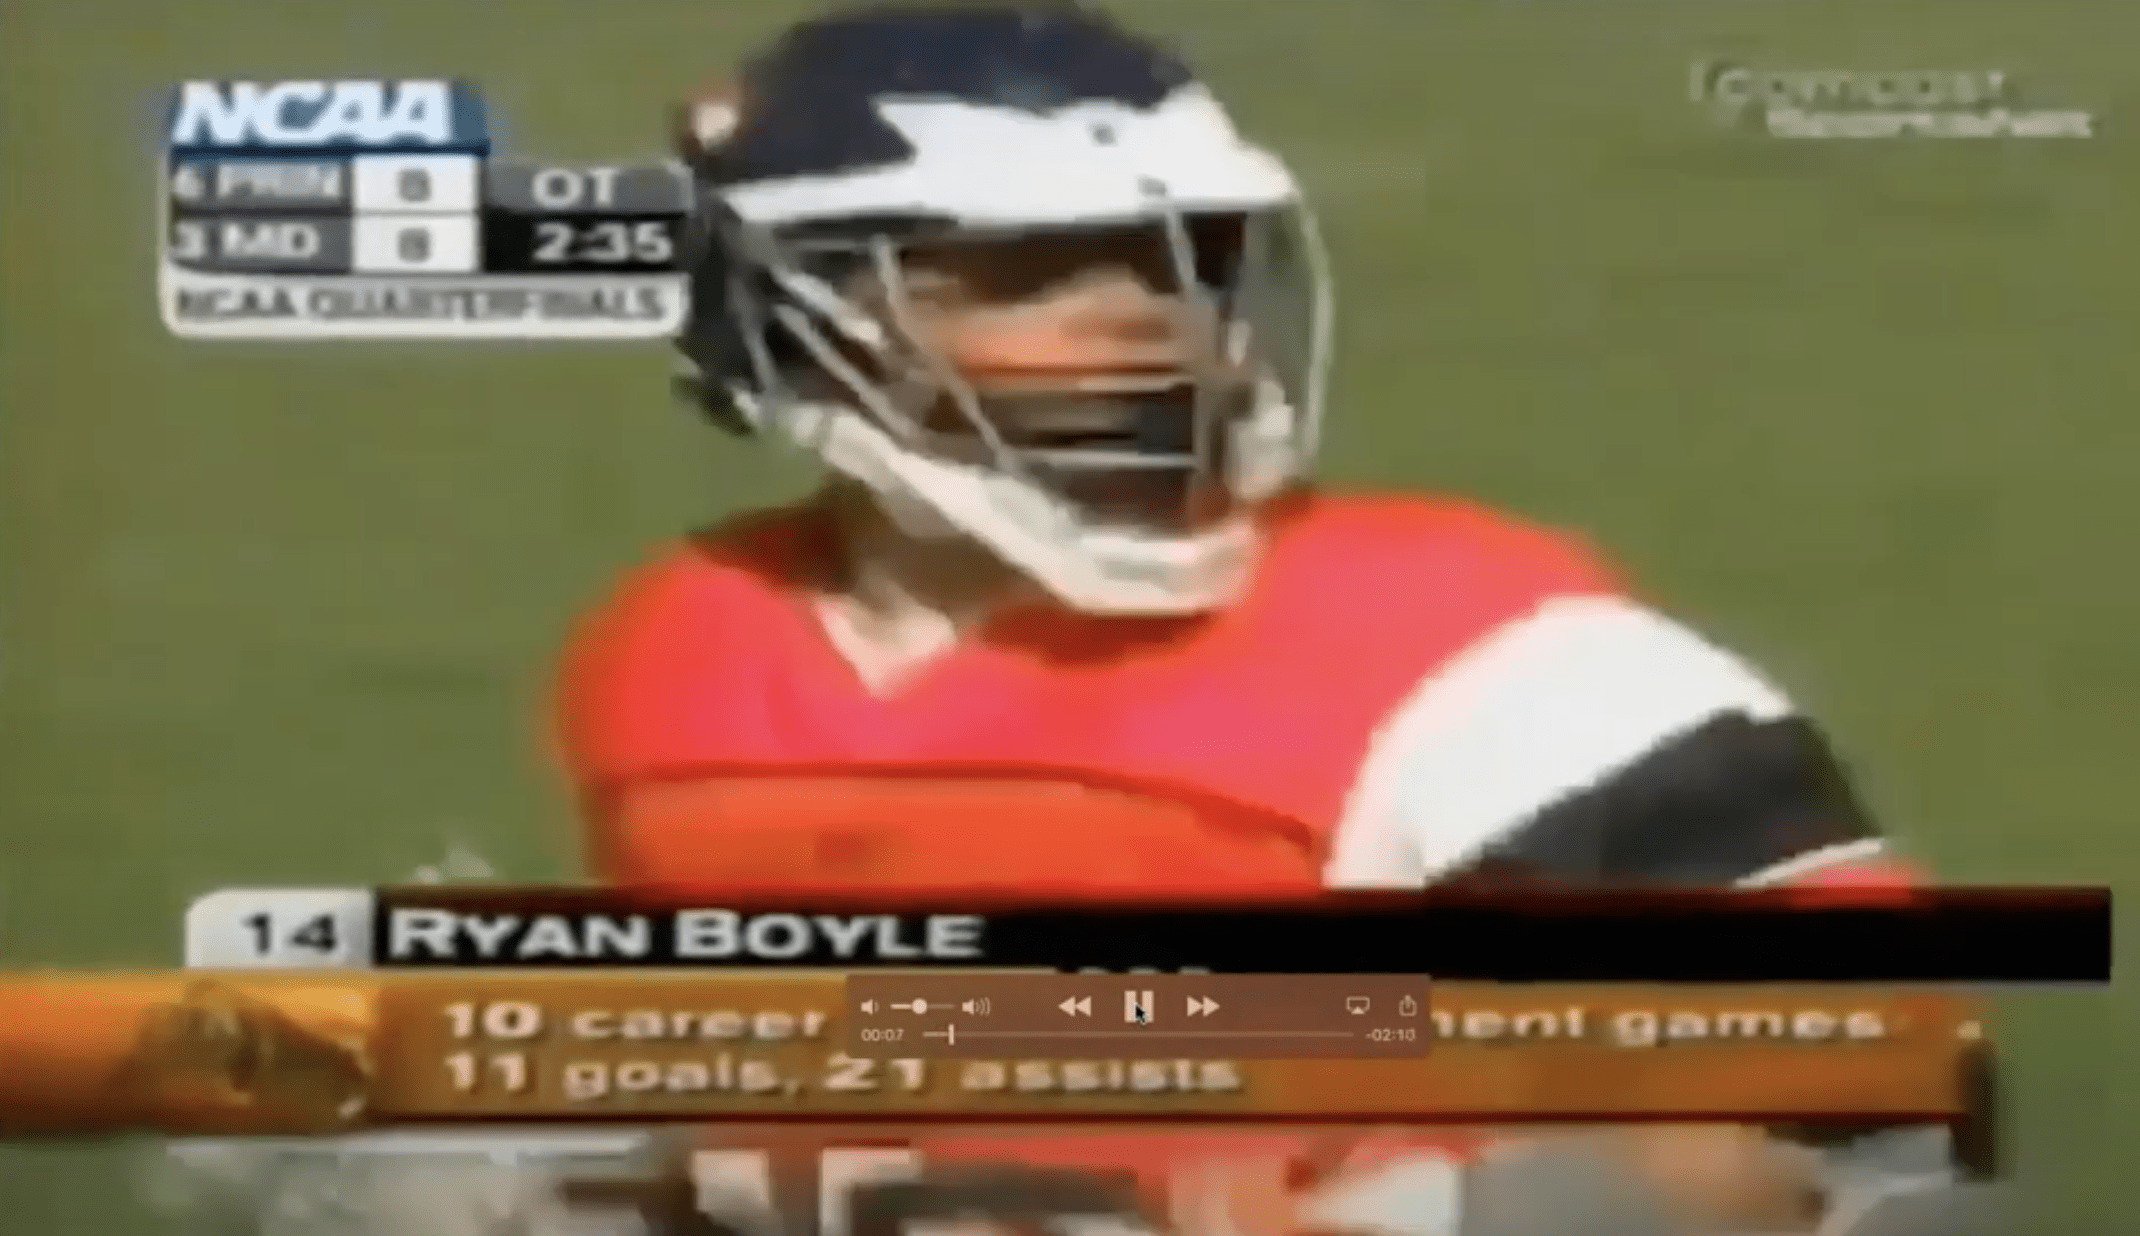 Watch Ryan Boyle's '04 NCAA Quarterfinals Highlights with Ryan Boyle!